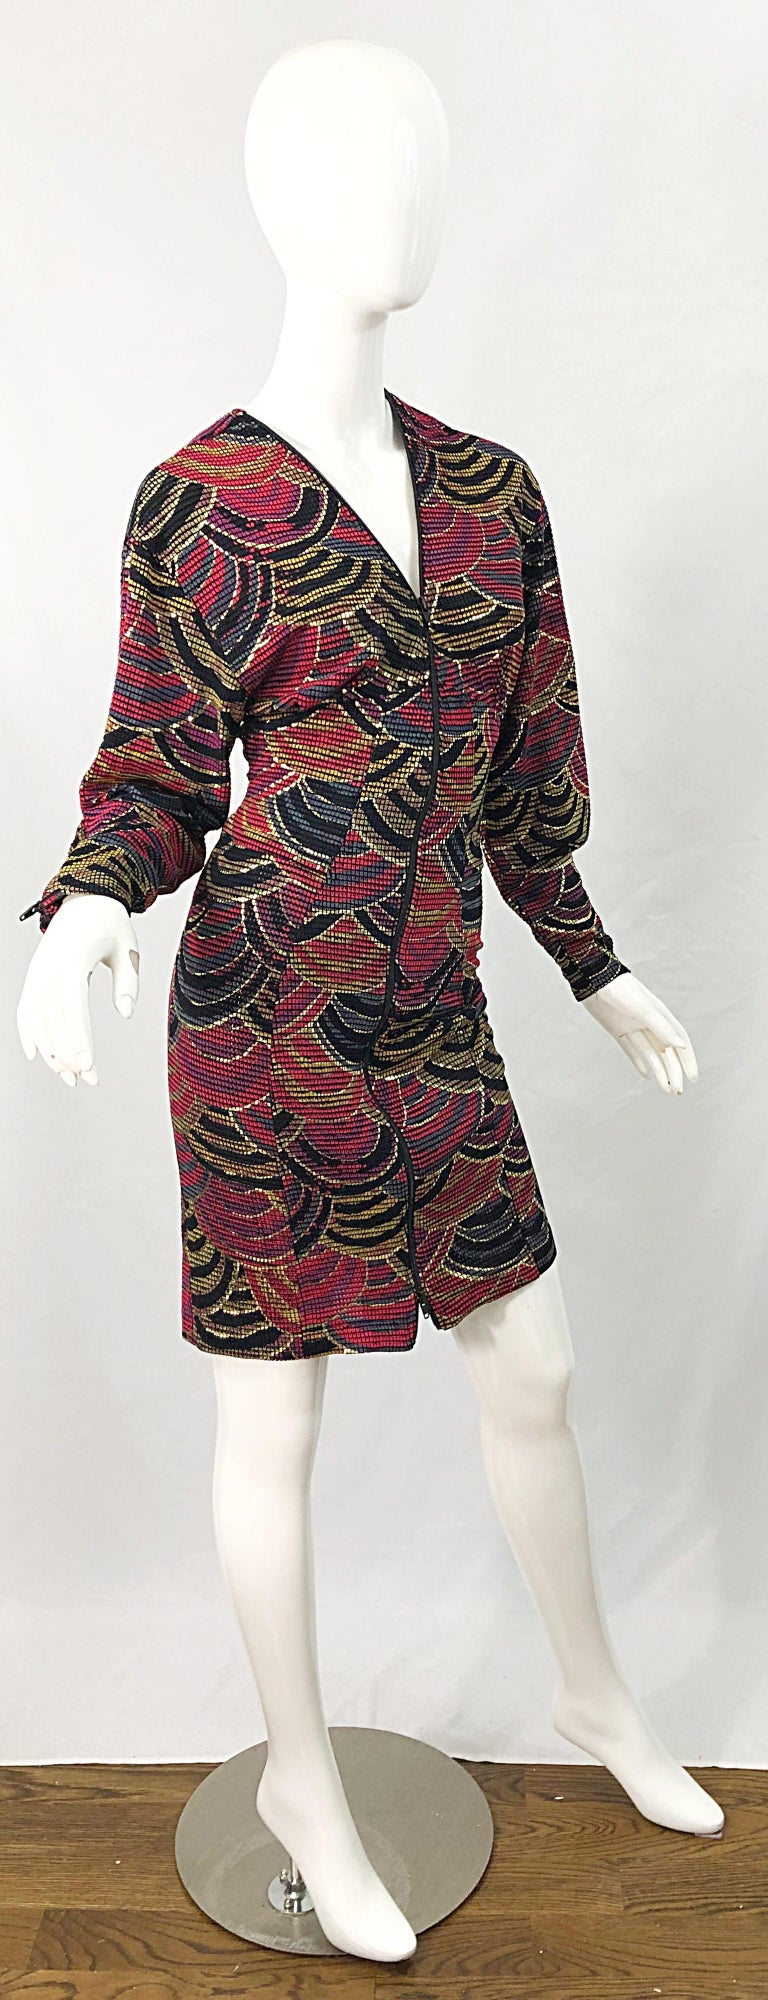 1980s Hand Painted Reversible Red + Gold + Green Vintage 80s Avant Garde Dress For Sale 9